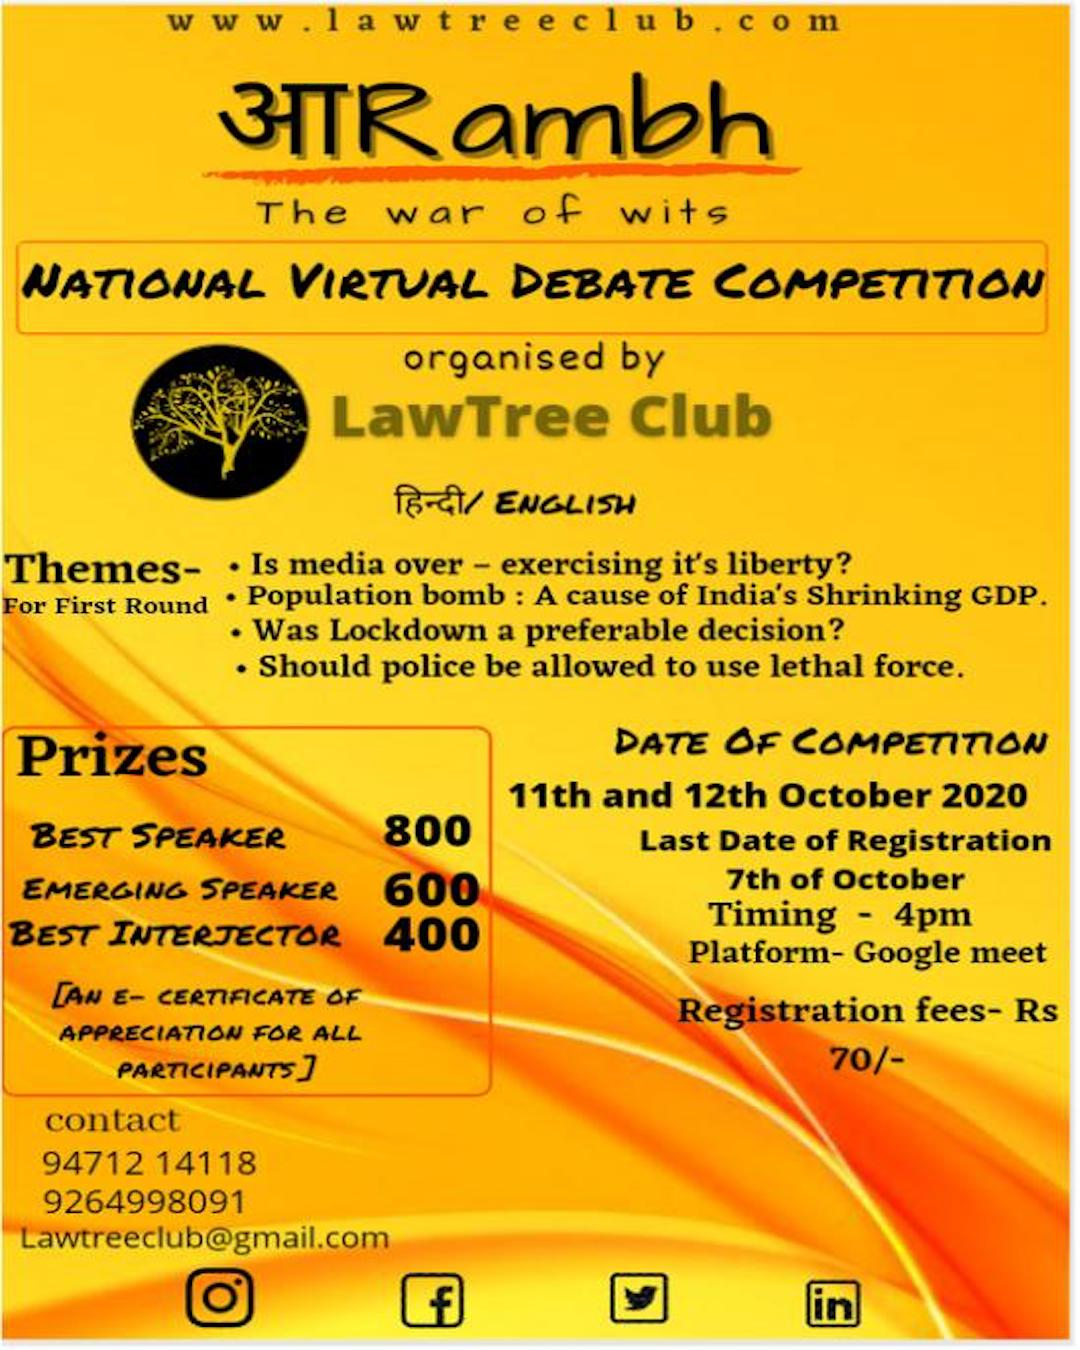 National Virtual Debate Competition by LawTree Club